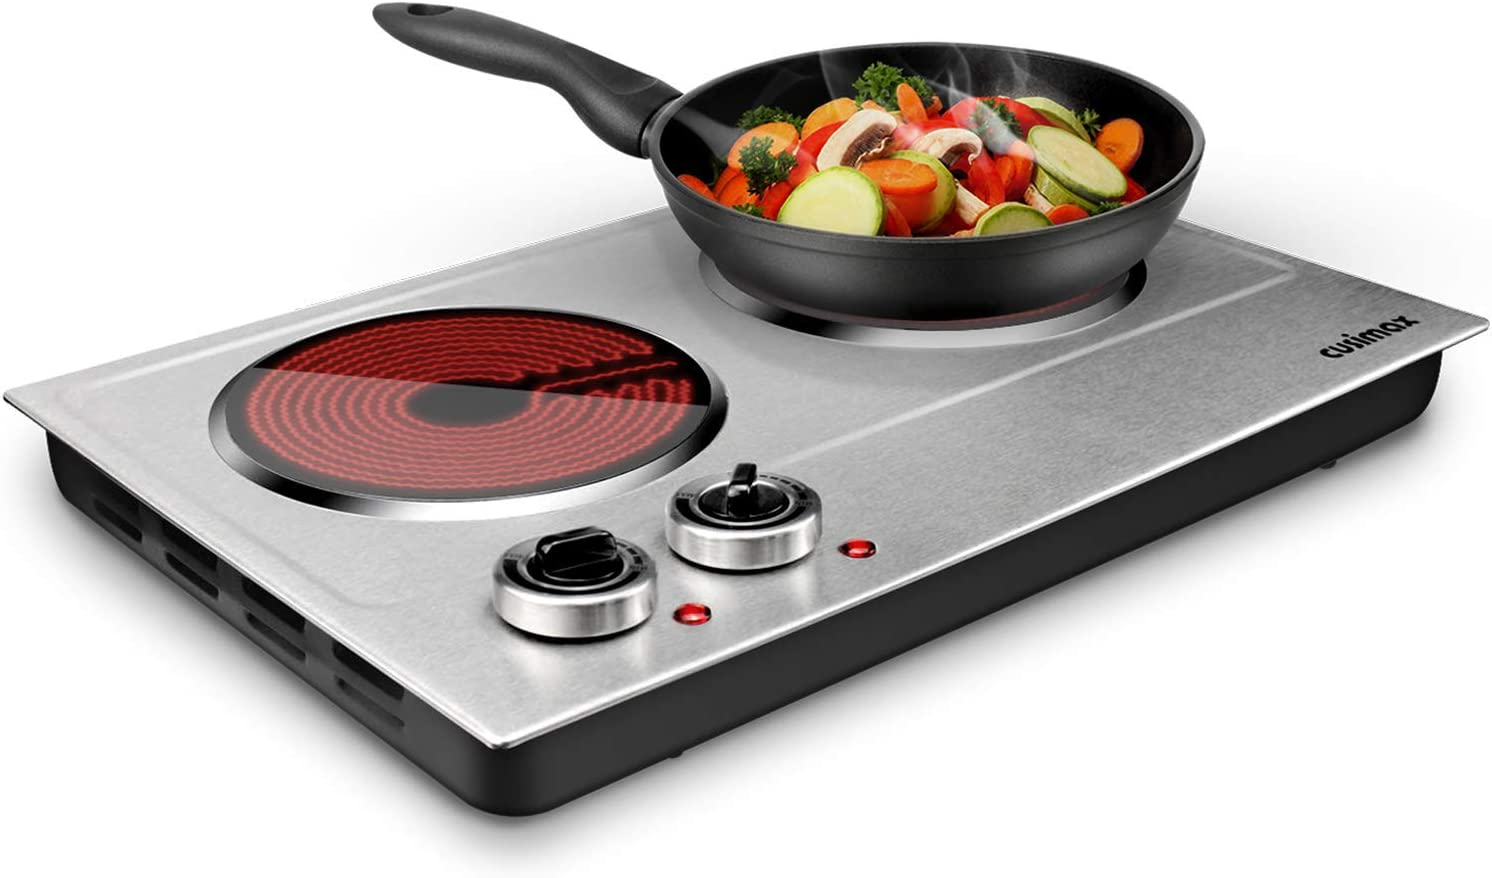 CUSIMAX 1800W Ceramic Electric Hot Plate for Cooking, Dual Control Infrared Cooktop, Portable Countertop Burner, Glass Plate Electric Cooktop, Silver, Stainless Steel-Upgraded Version